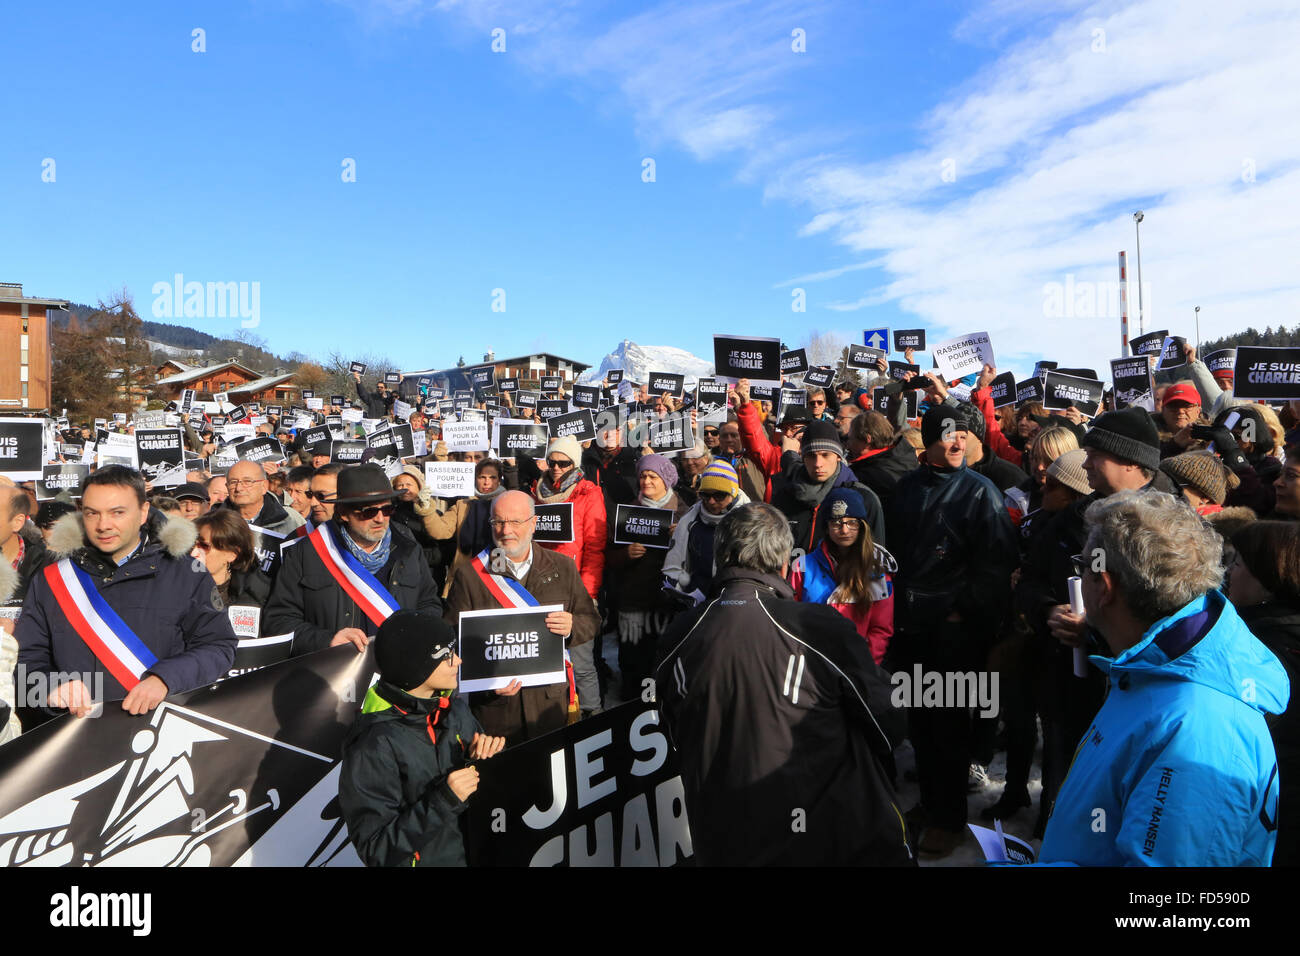 Republican run in Haute Savoie against terrorism. 'I'm Charlie.' 'The Mont Blanc is Charlie.' - Stock Image